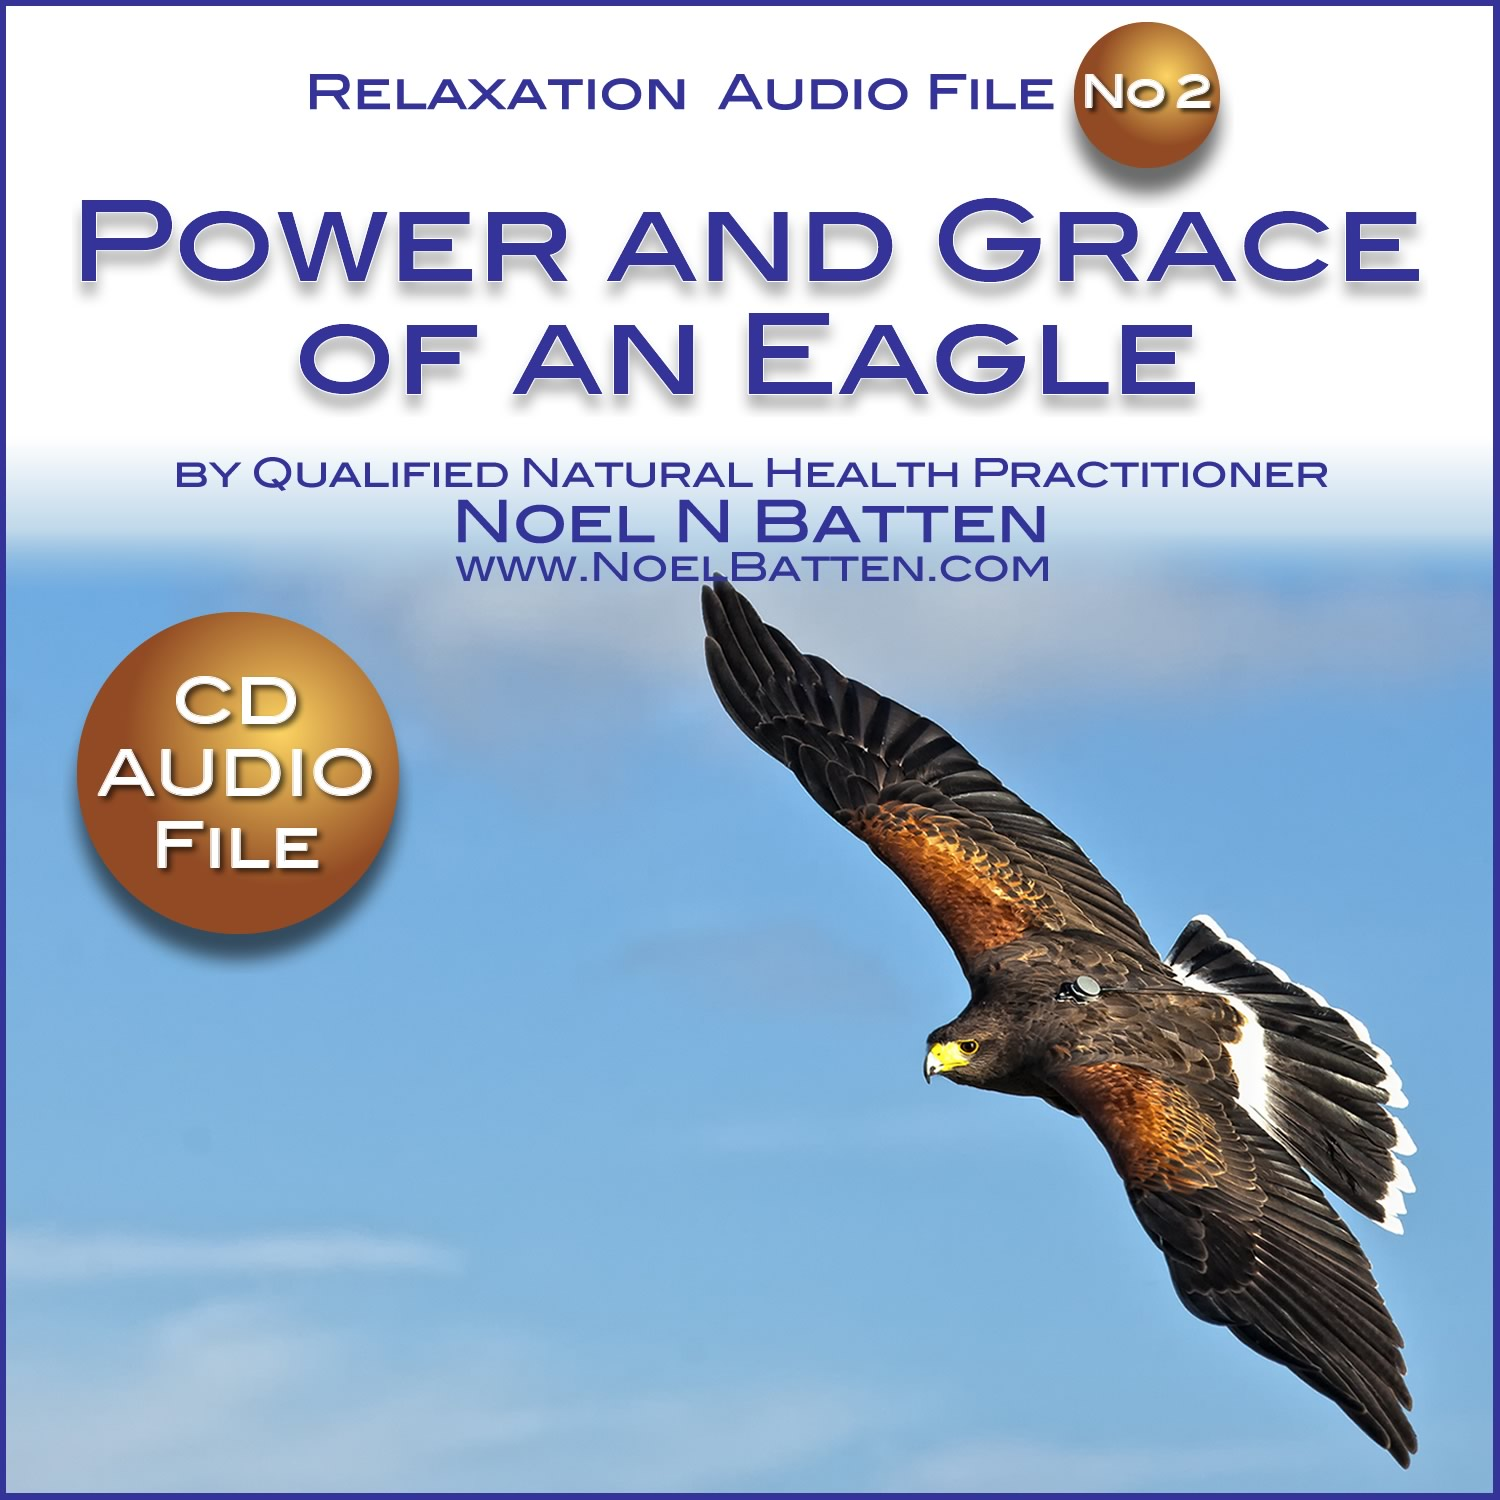 The Power and Grace Of An Eagle MP3 Audio File-0